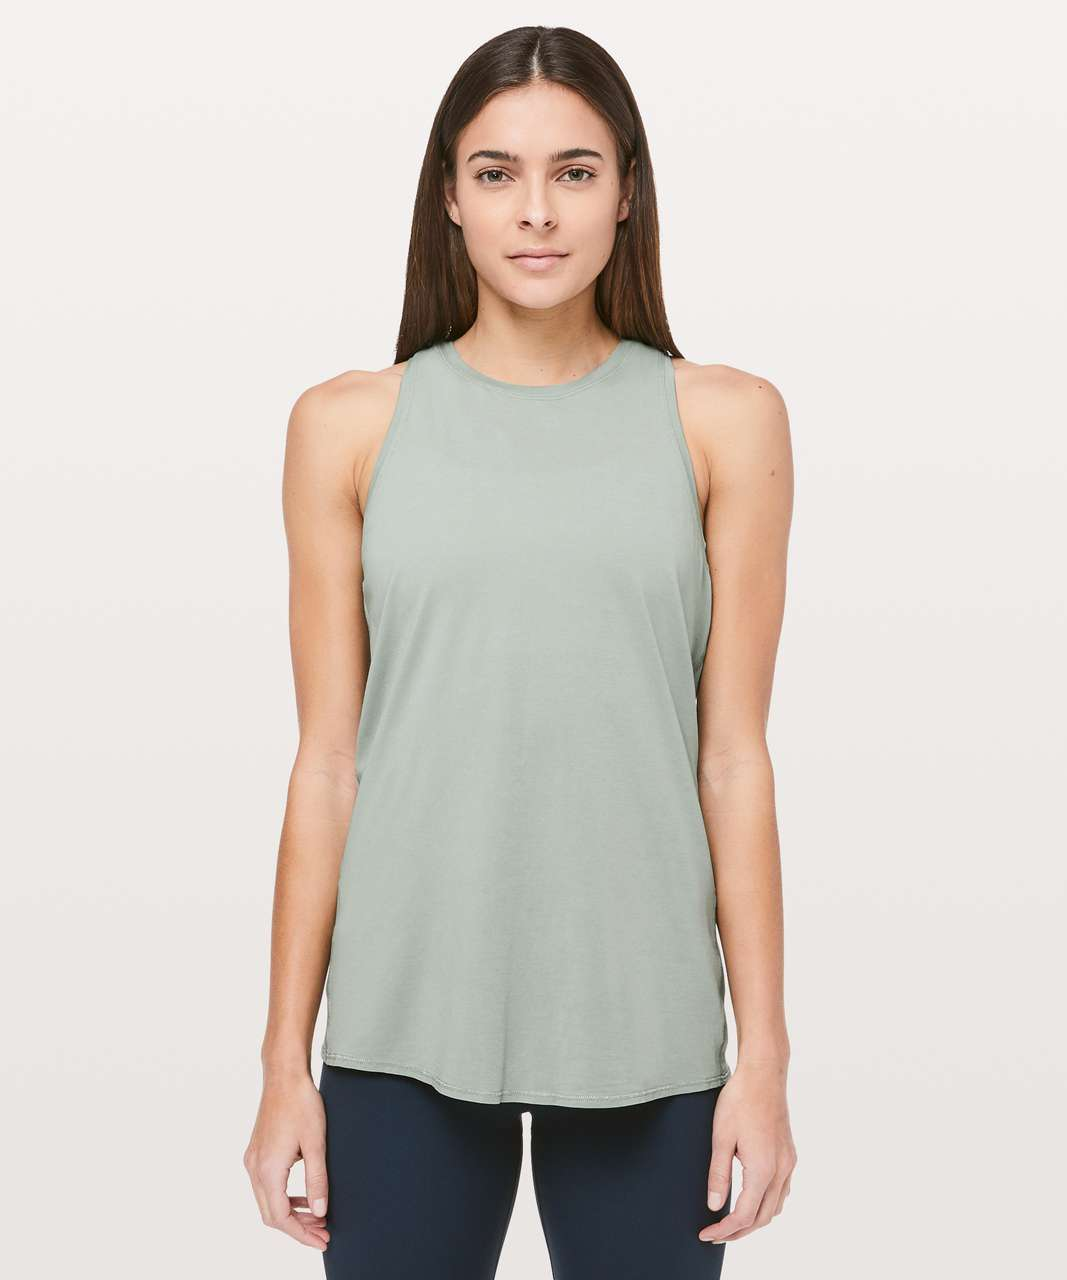 Lululemon All Tied Up Tank - Palm Court